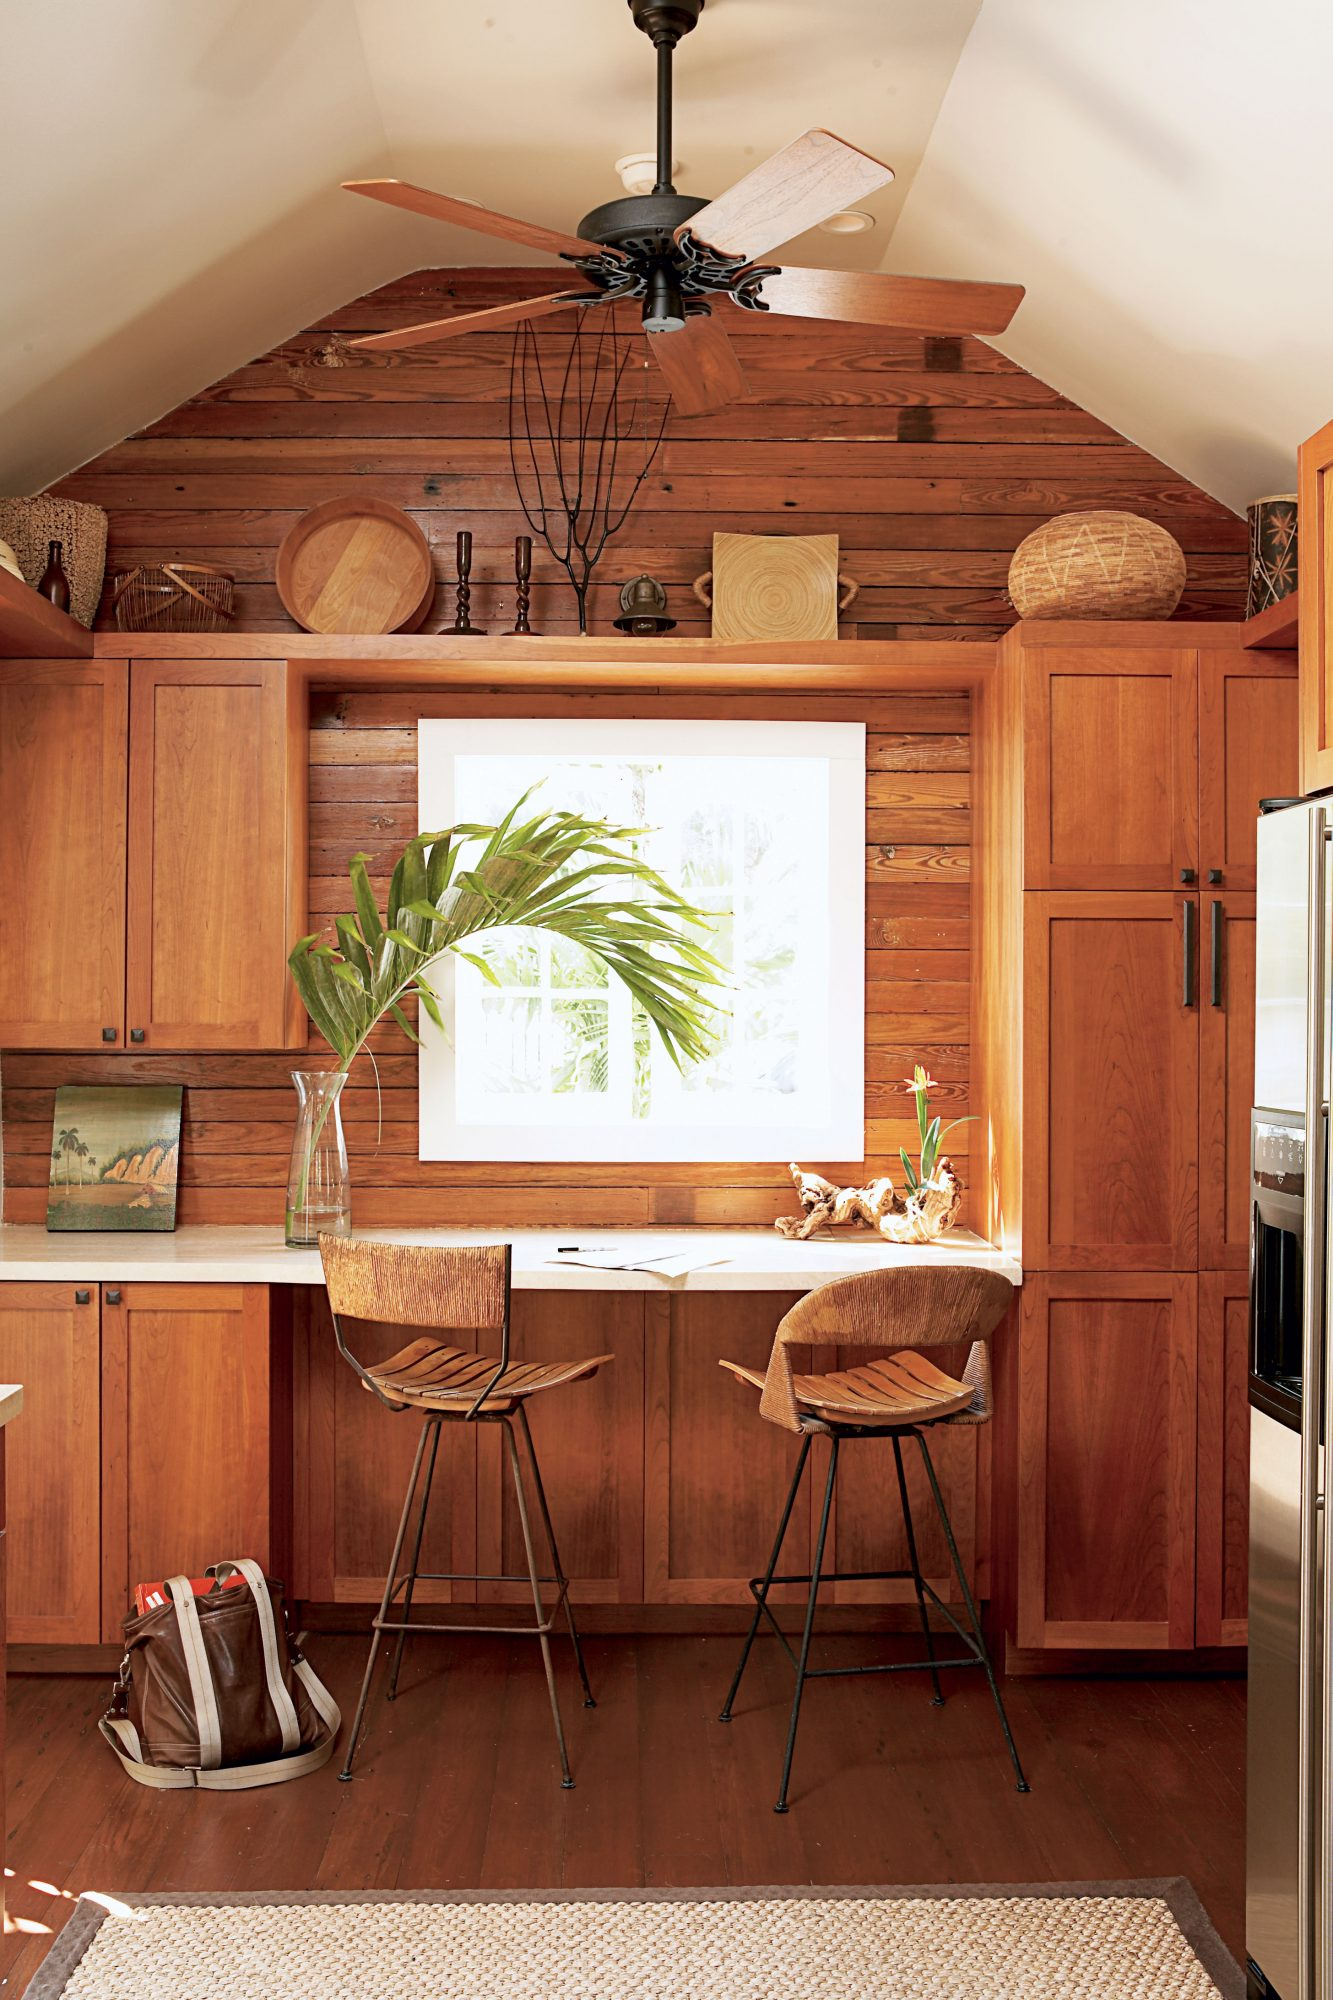 Refinished original Dade County pine, now an endangered native species, adds rich vintage warmth to a 19th-century home.